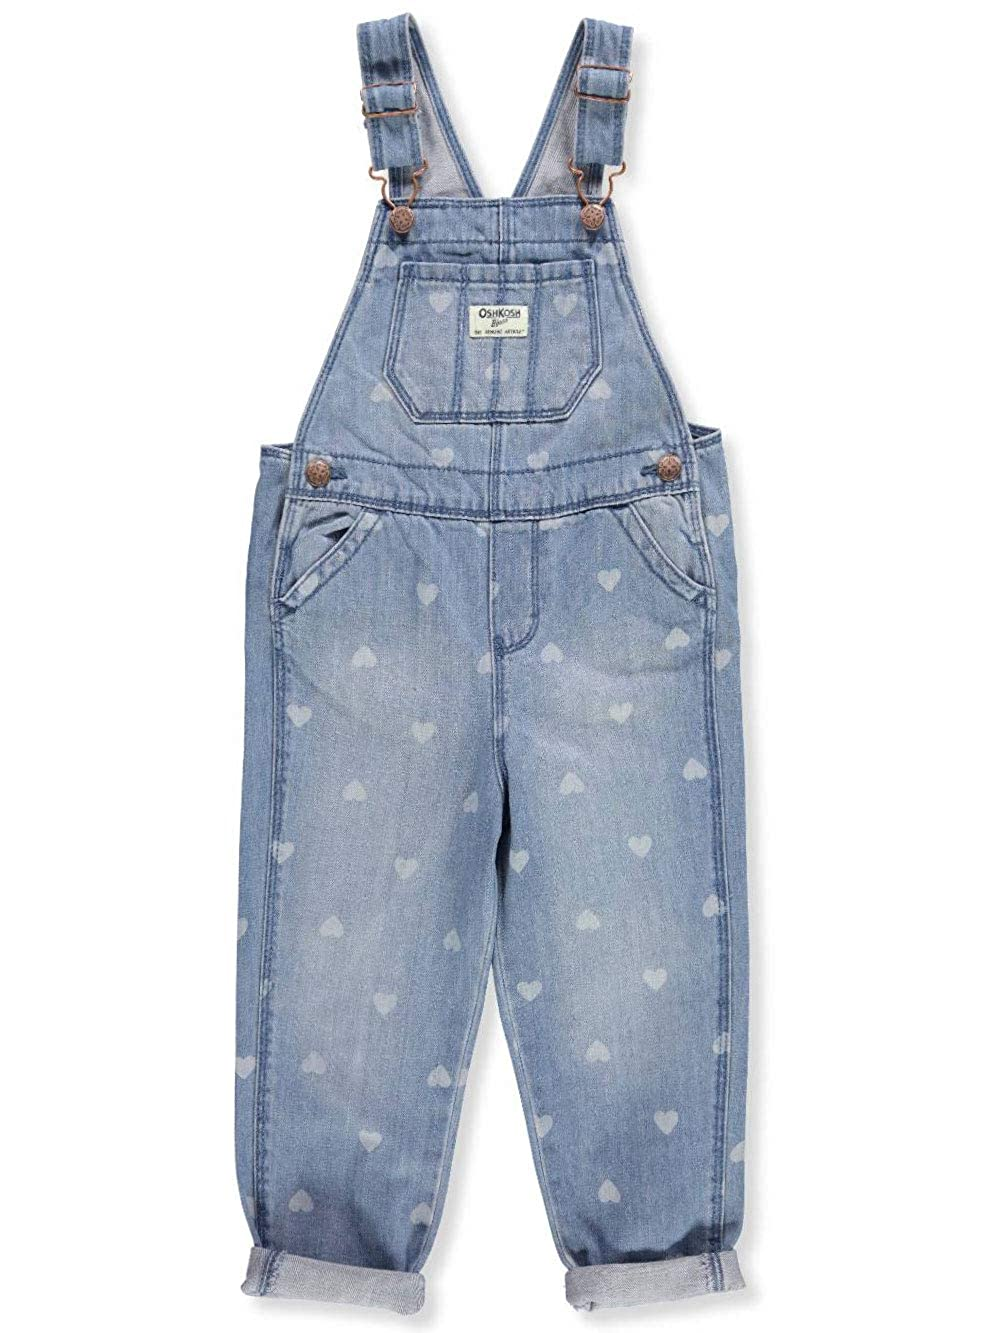 超美品 OshKosh B'Gosh PANTS Wash ガールズ B07KRXNXBM Sea Mist OshKosh Wash 幼児 Mist 幼児|Sea Mist Wash|5T, 神戸牛専門店 辰屋:336628f9 --- vanhavertotgracht.nl